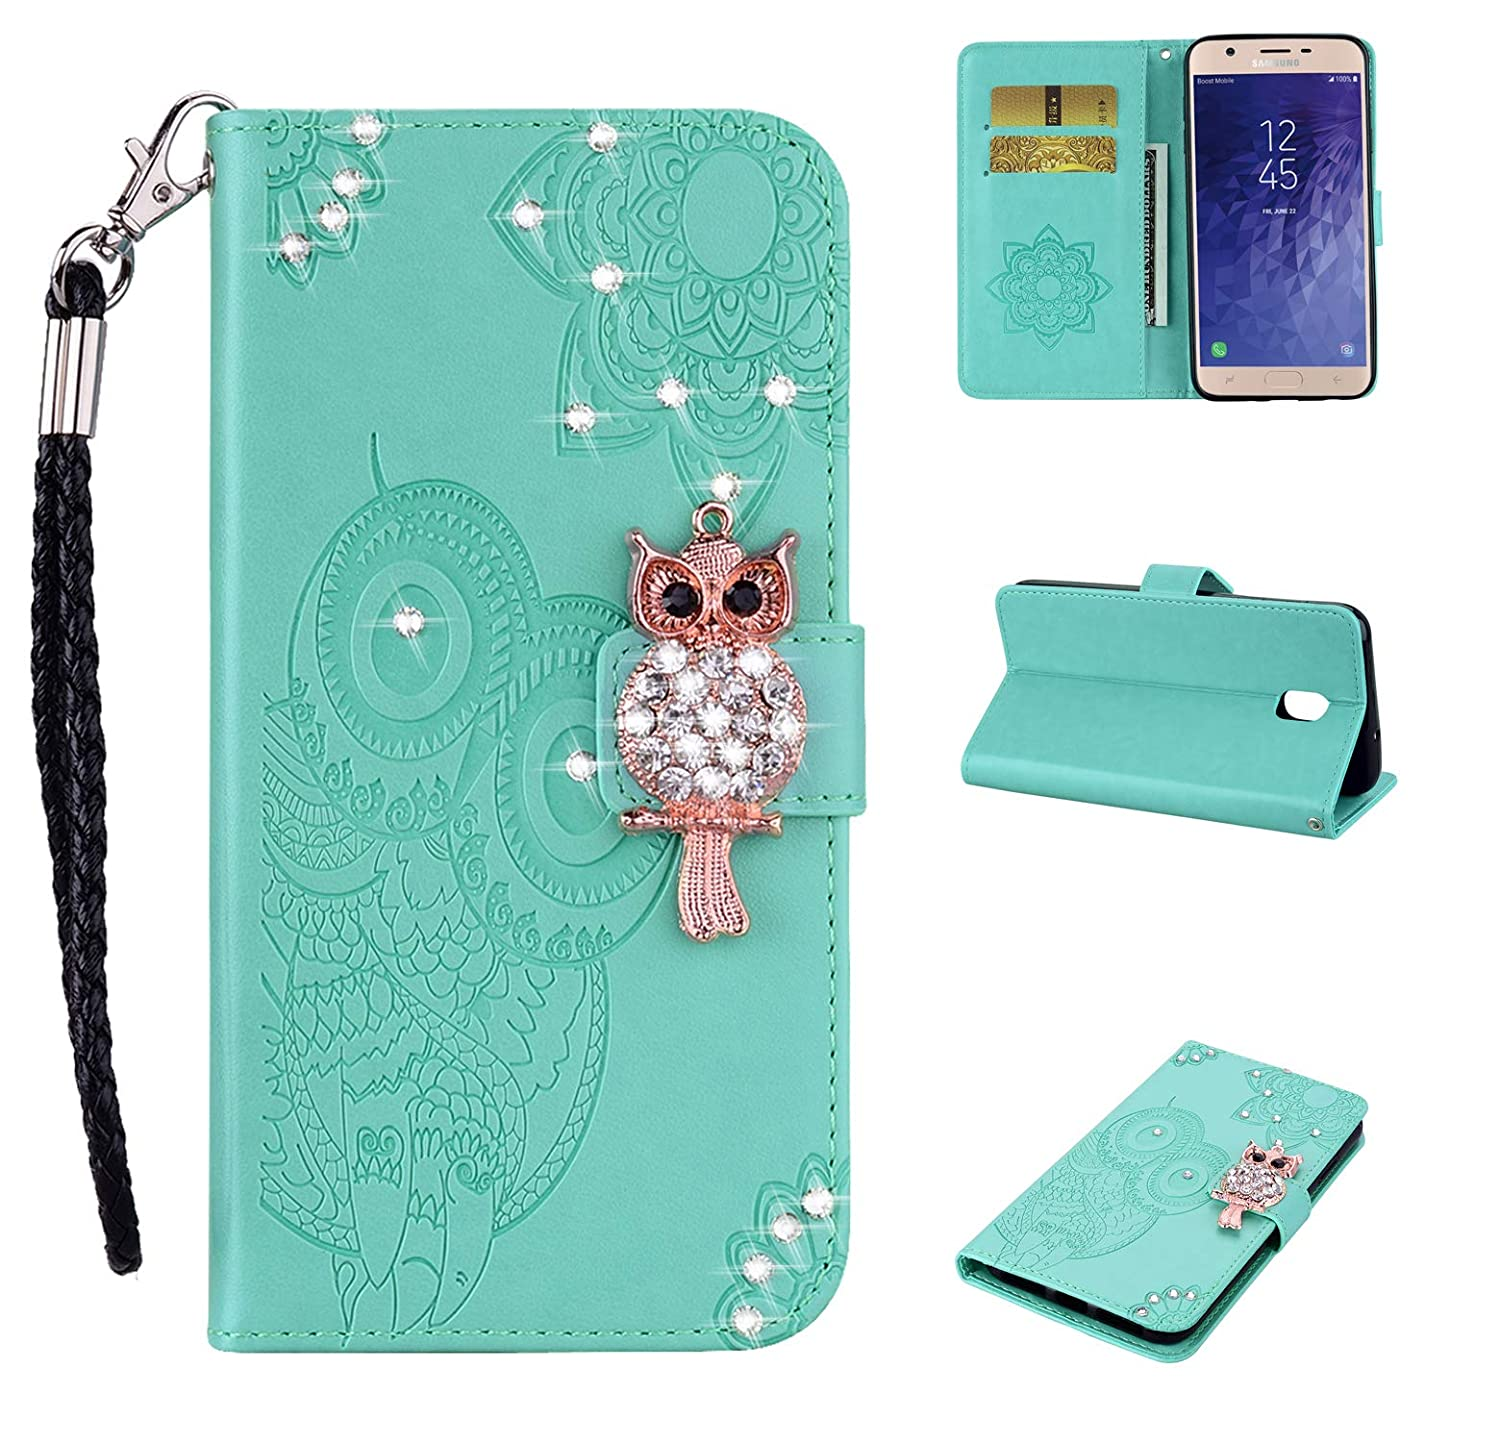 Funyye Rose Gold Strap Cover for Samsung Galaxy J3 2018,Cute 3D Diamond Owl Pattern Design Magnetic Flip Wallet Glitter Case with Stand Card Holder Slots Cover for Samsung Galaxy J3 2018